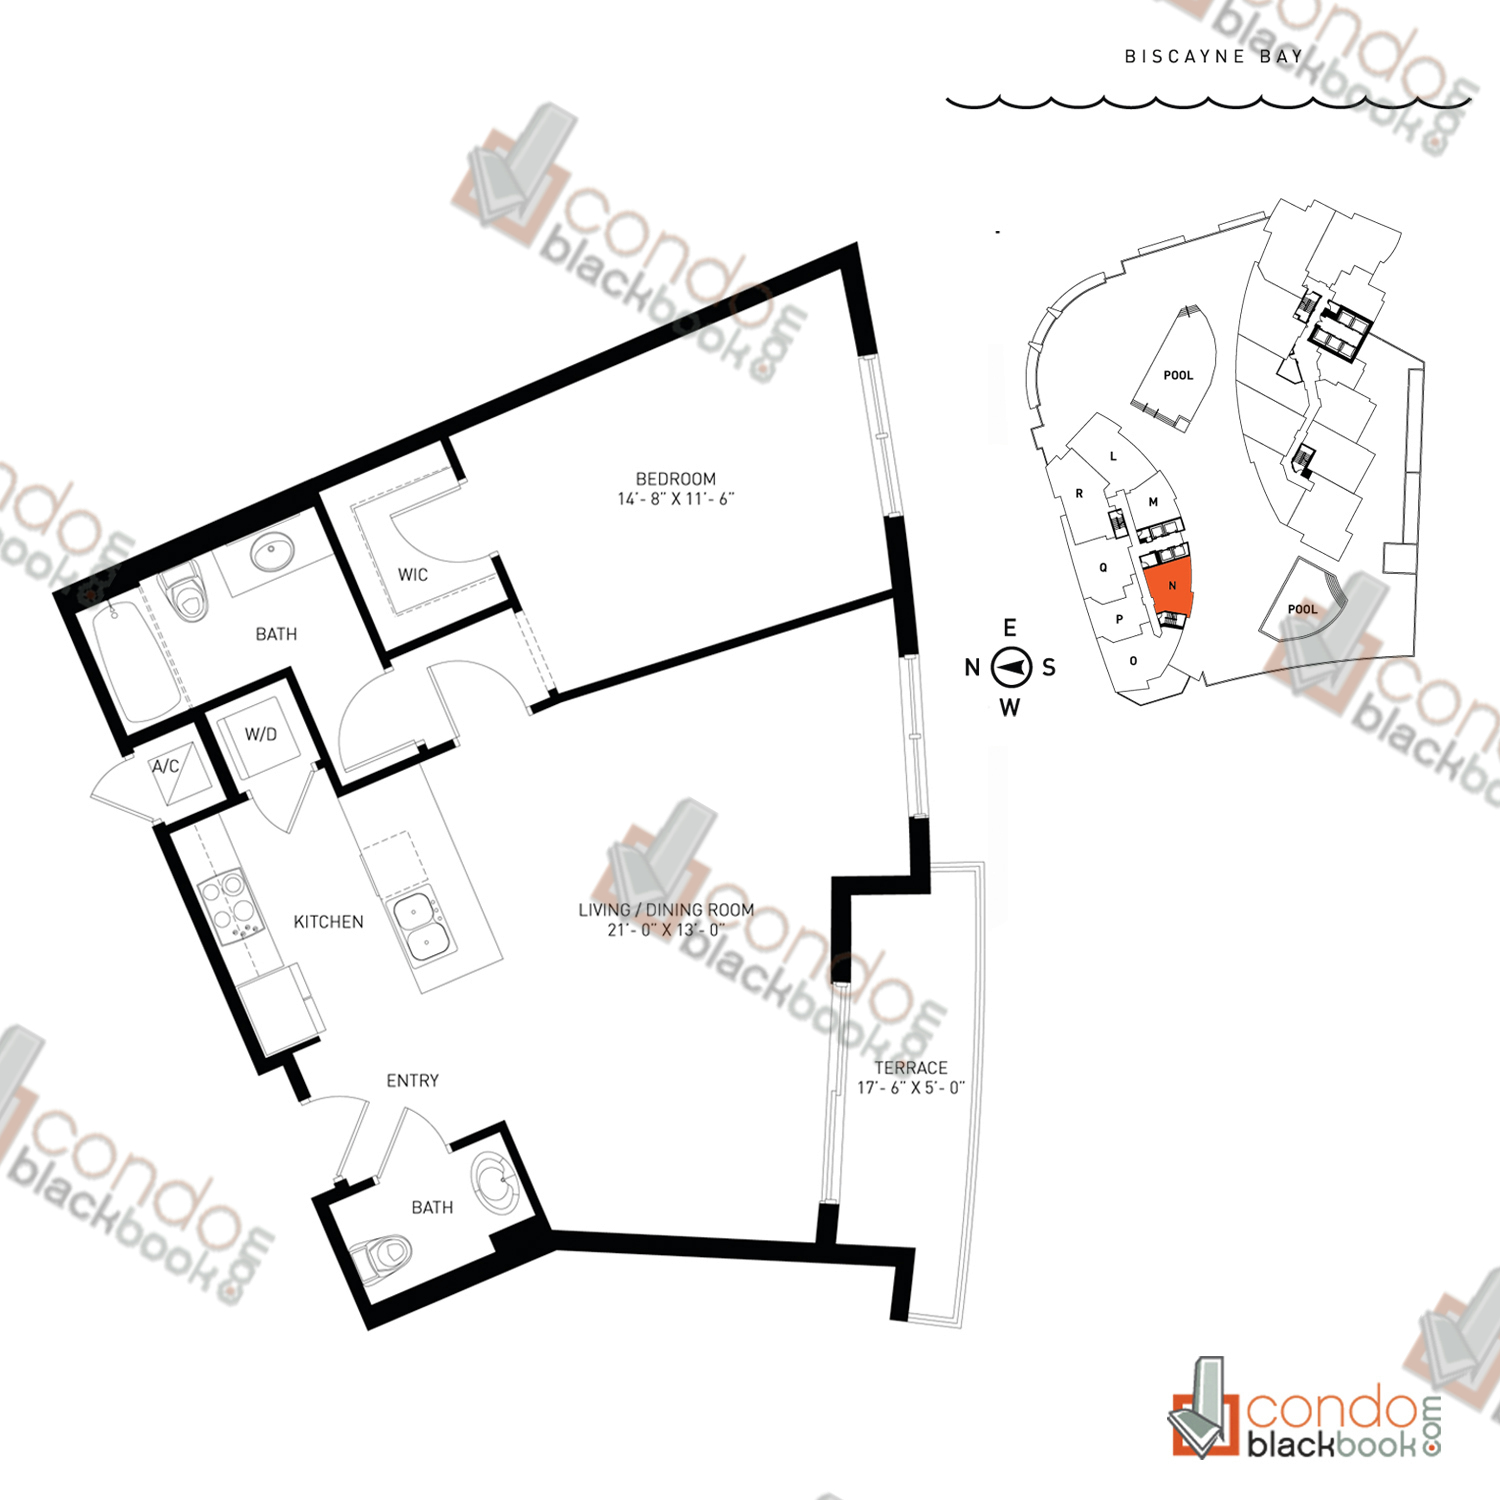 Floor plan for Quantum on the Bay Edgewater Miami, model Residence_N, line North Tower - 19, 1/1.5 bedrooms, 865 sq ft